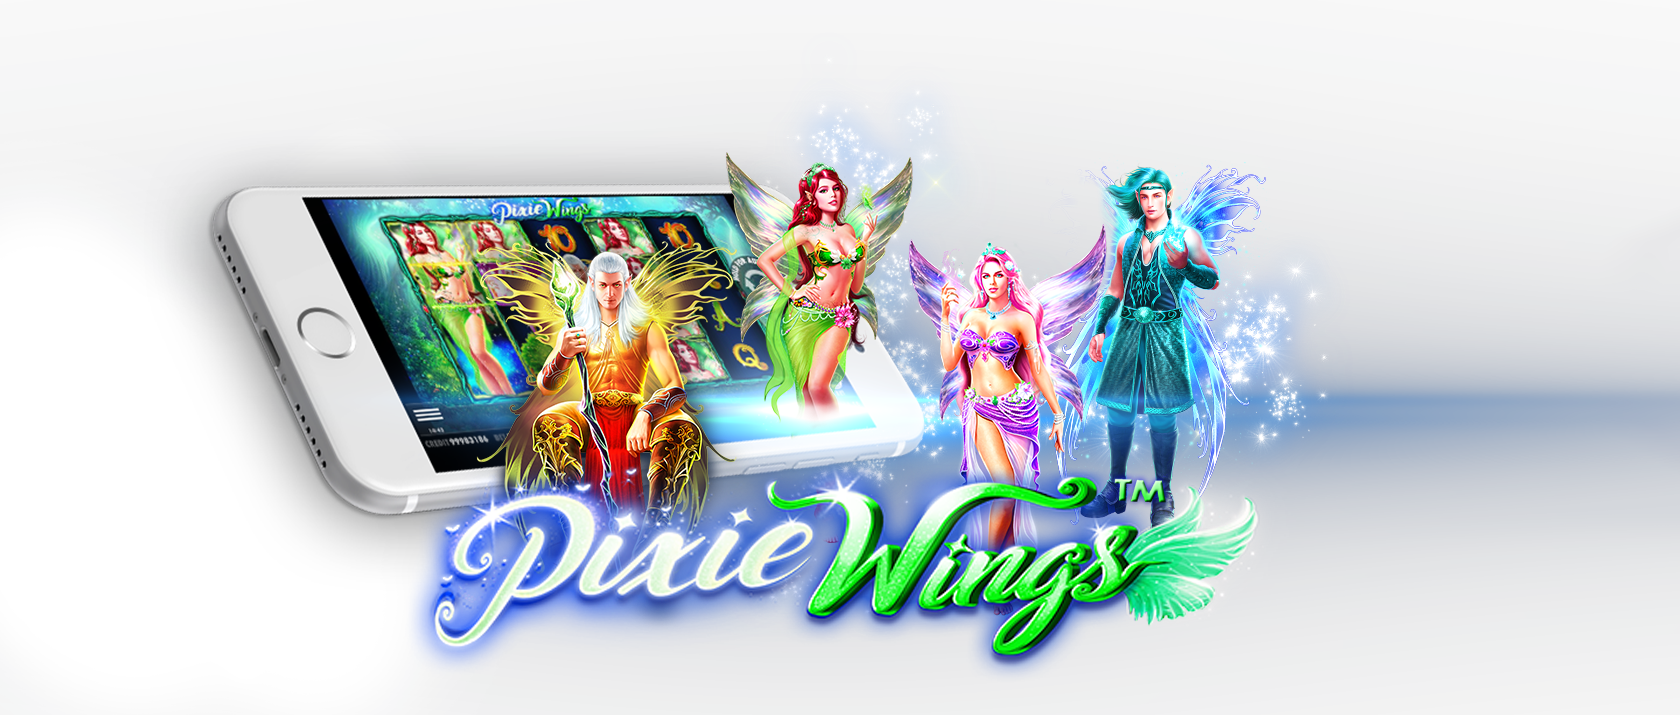 pixie wings slots game logo